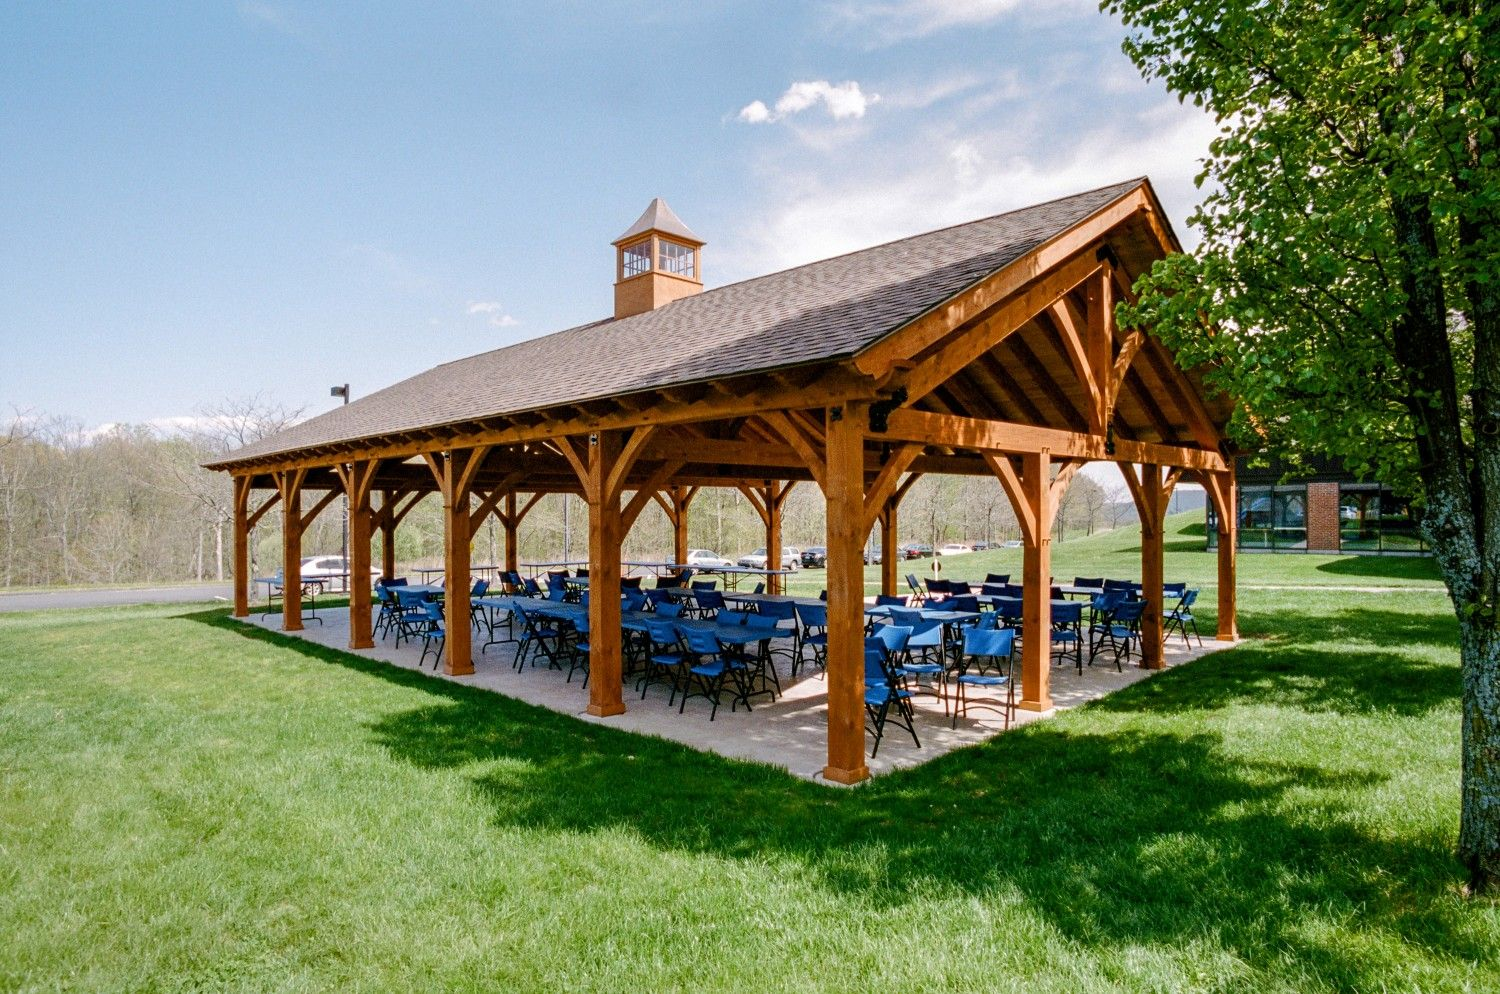 Pavilions Timber Frame & Vinyl The Barn Yard & Great